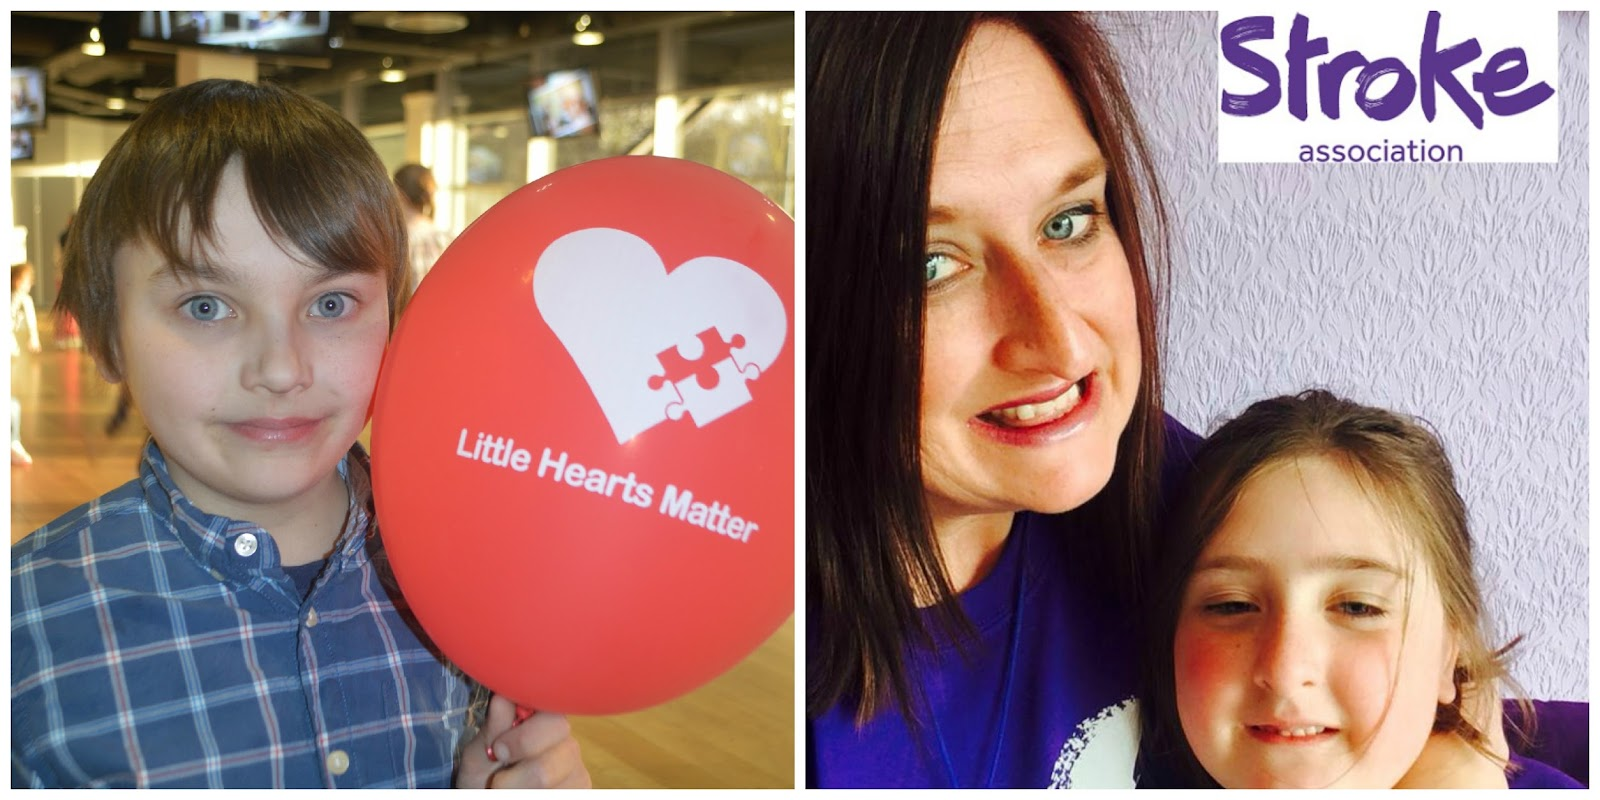 Little Hearts Matters The Stroke Association Charities